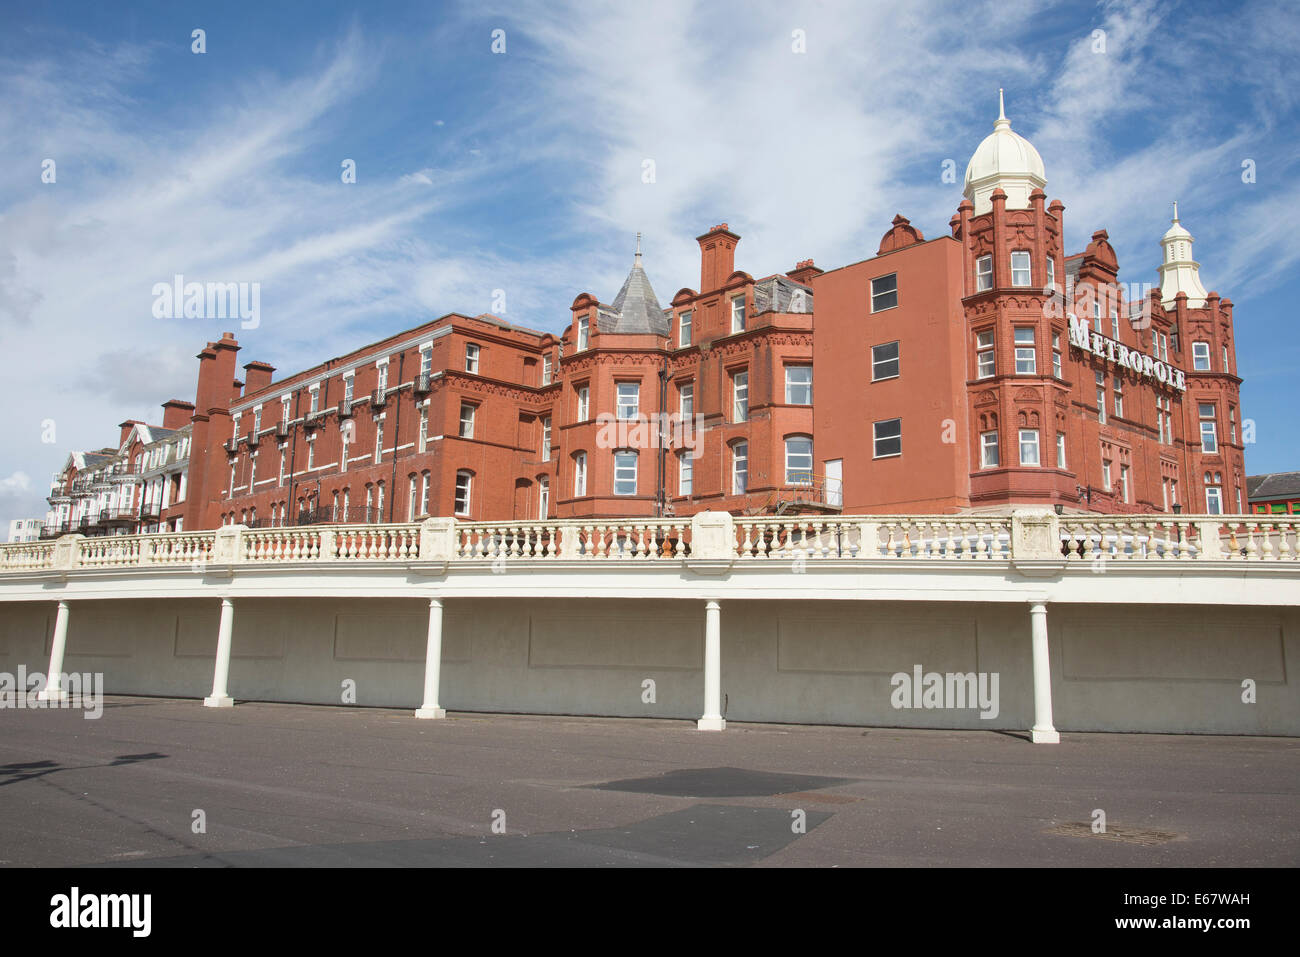 Metropole Hotel Blackpool Lancashire England UK Seen on a summer day in August 2014 and nobody in sight - Stock Image